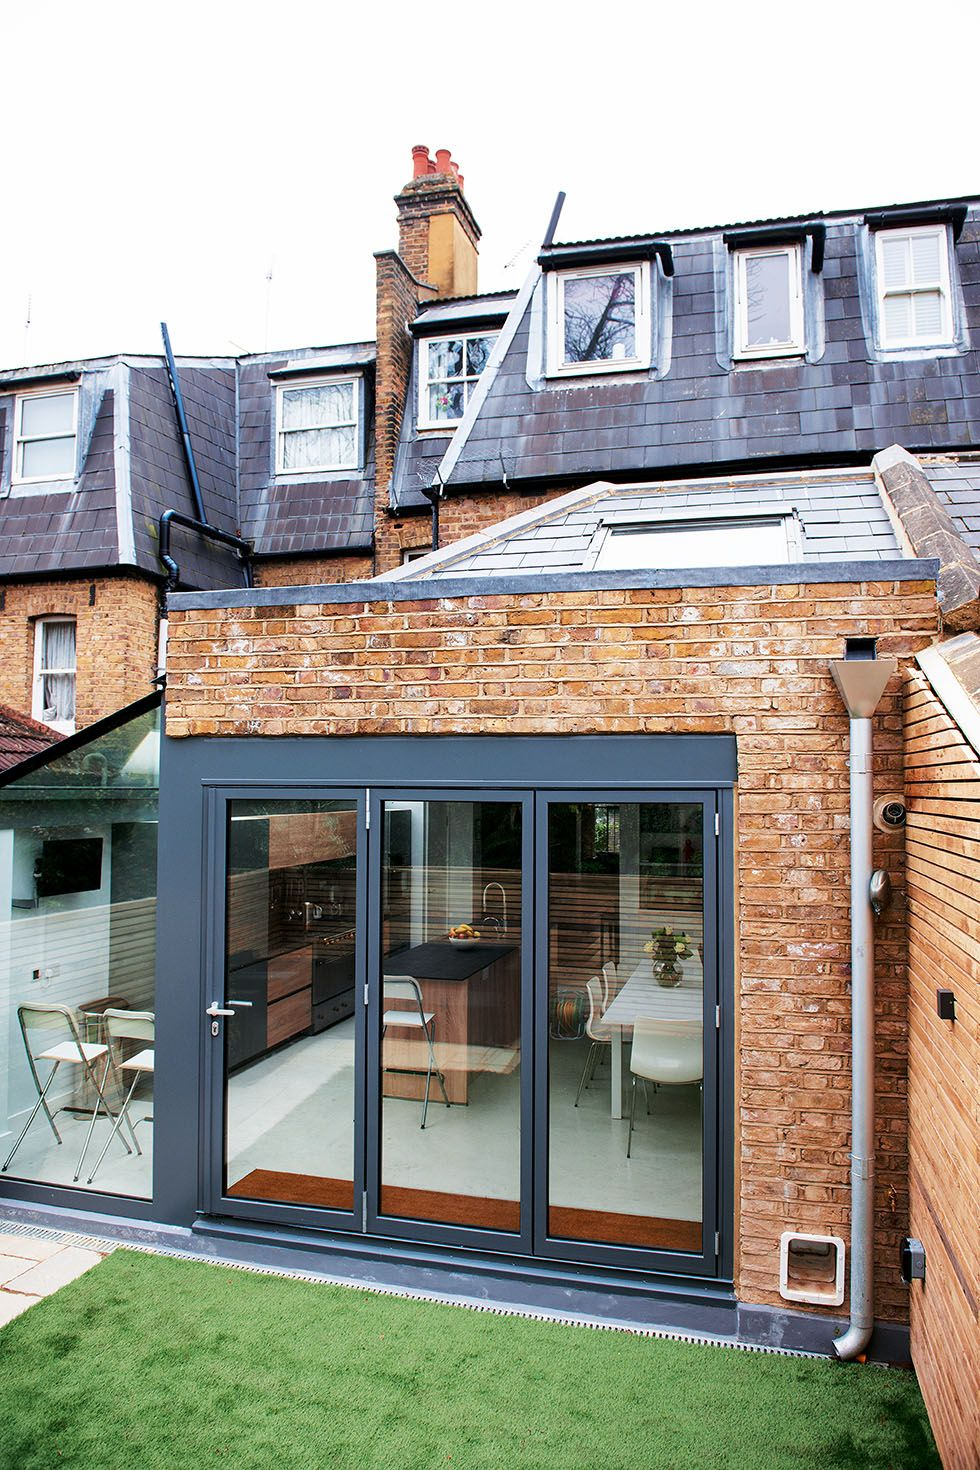 260 Terraced House Kitchen Diner Extension Ideas Kitchen Diner Extension Kitchen Diner House